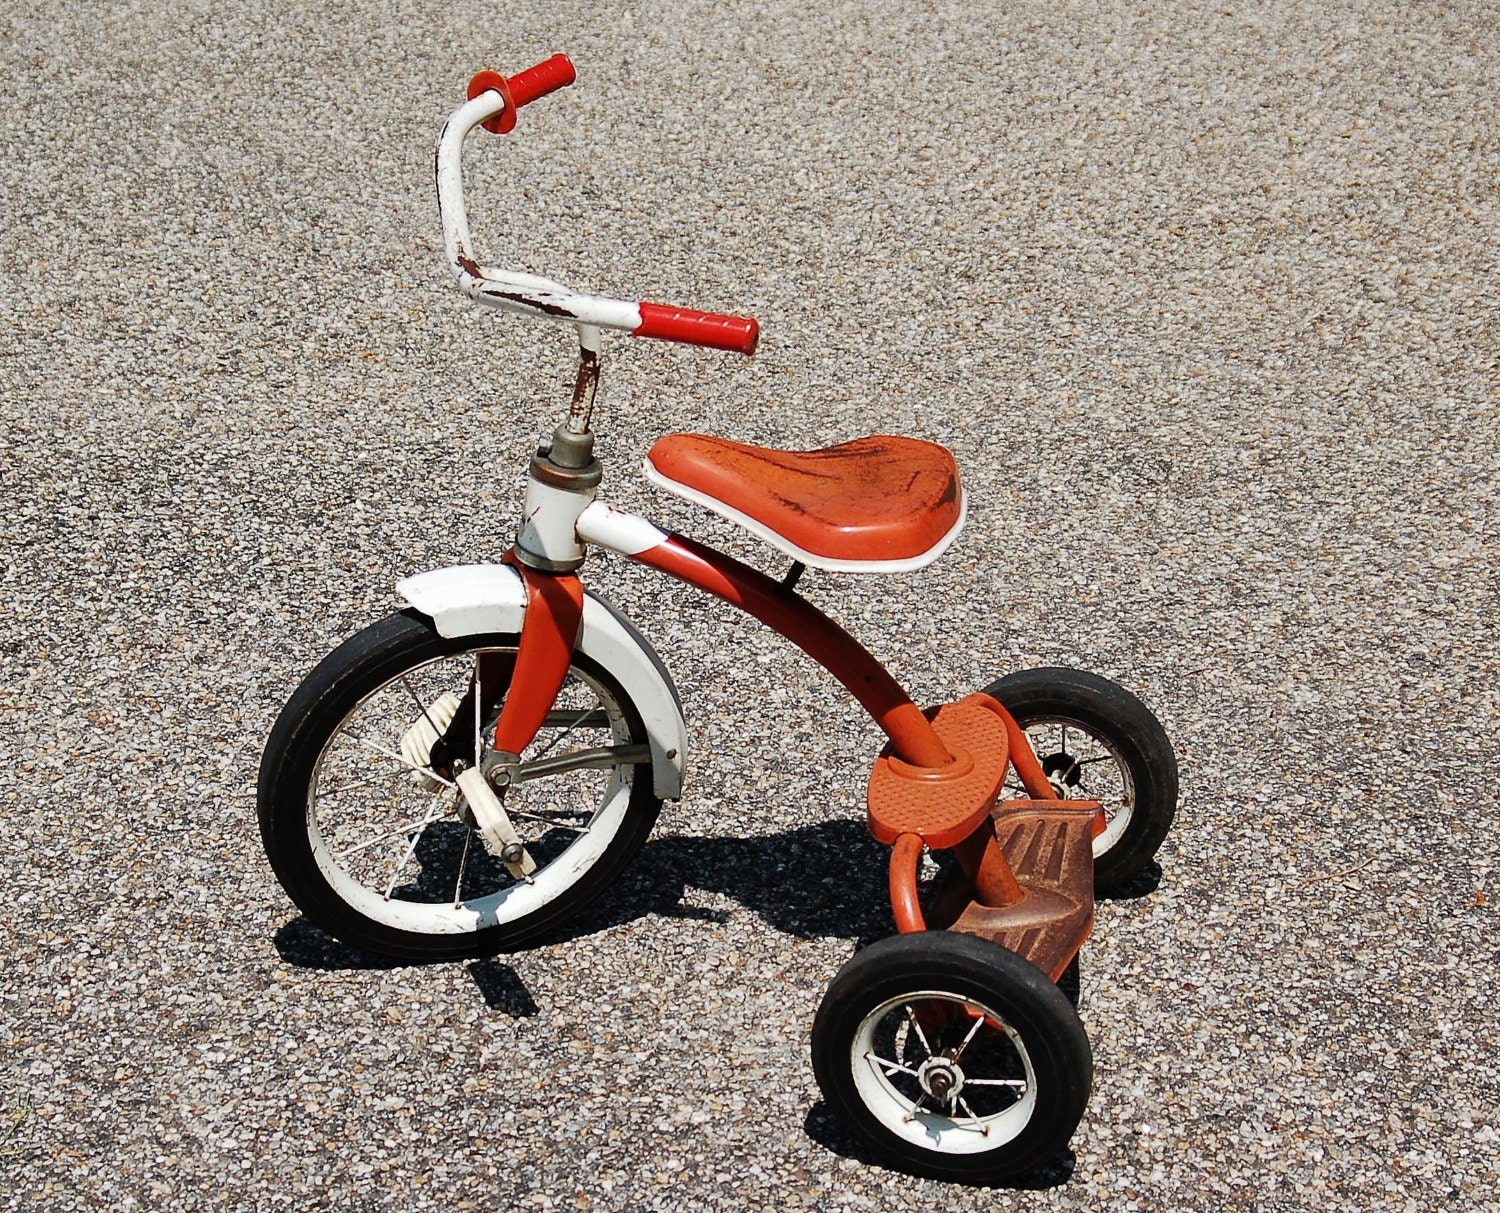 Makers Of Antique Tricycles : Vintage hedstrom child s tricycle mid century orange